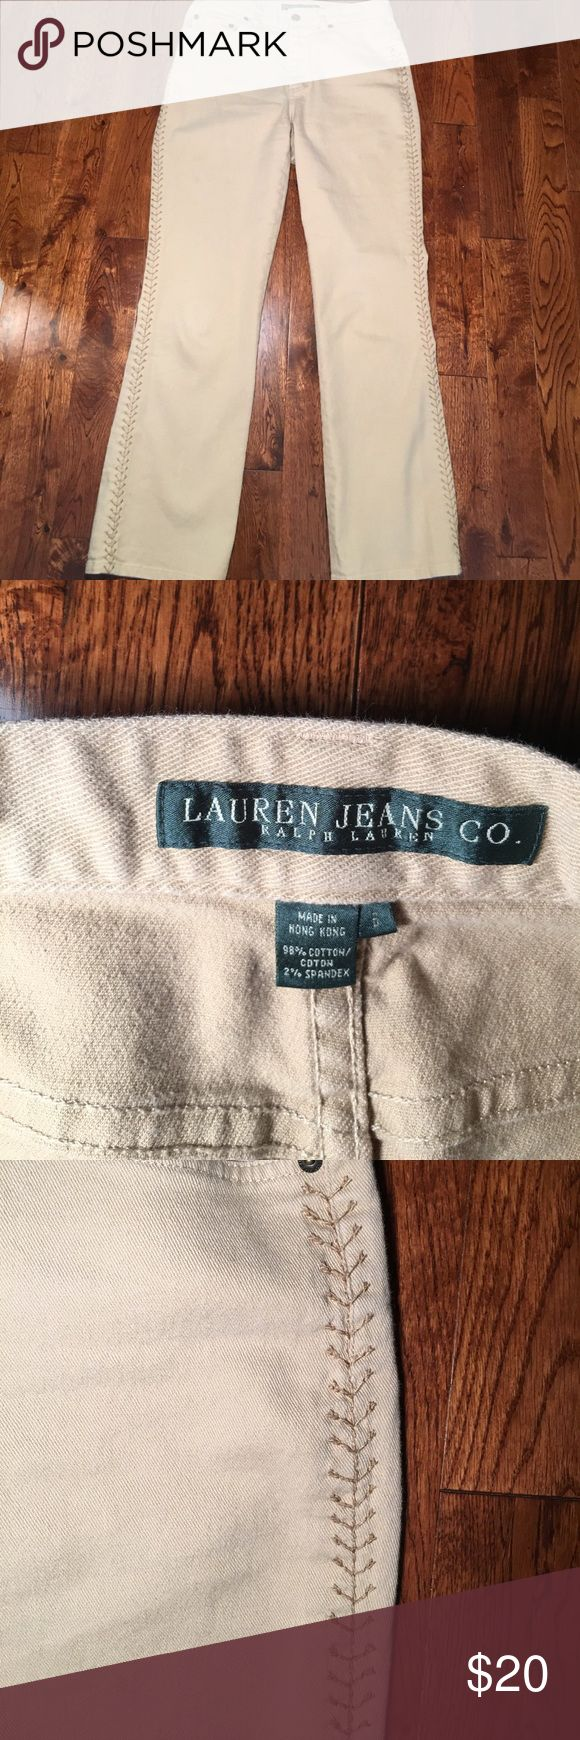 Ralph Lauren Tan Jeans w/ embellishments. Size 6 Tan Ralph Lauren Jeans see pic if arrow stitched embellishments going down leg. Really Cute pant. Lightly worn Lauren Jeans Co. Ralph Lauren Jeans